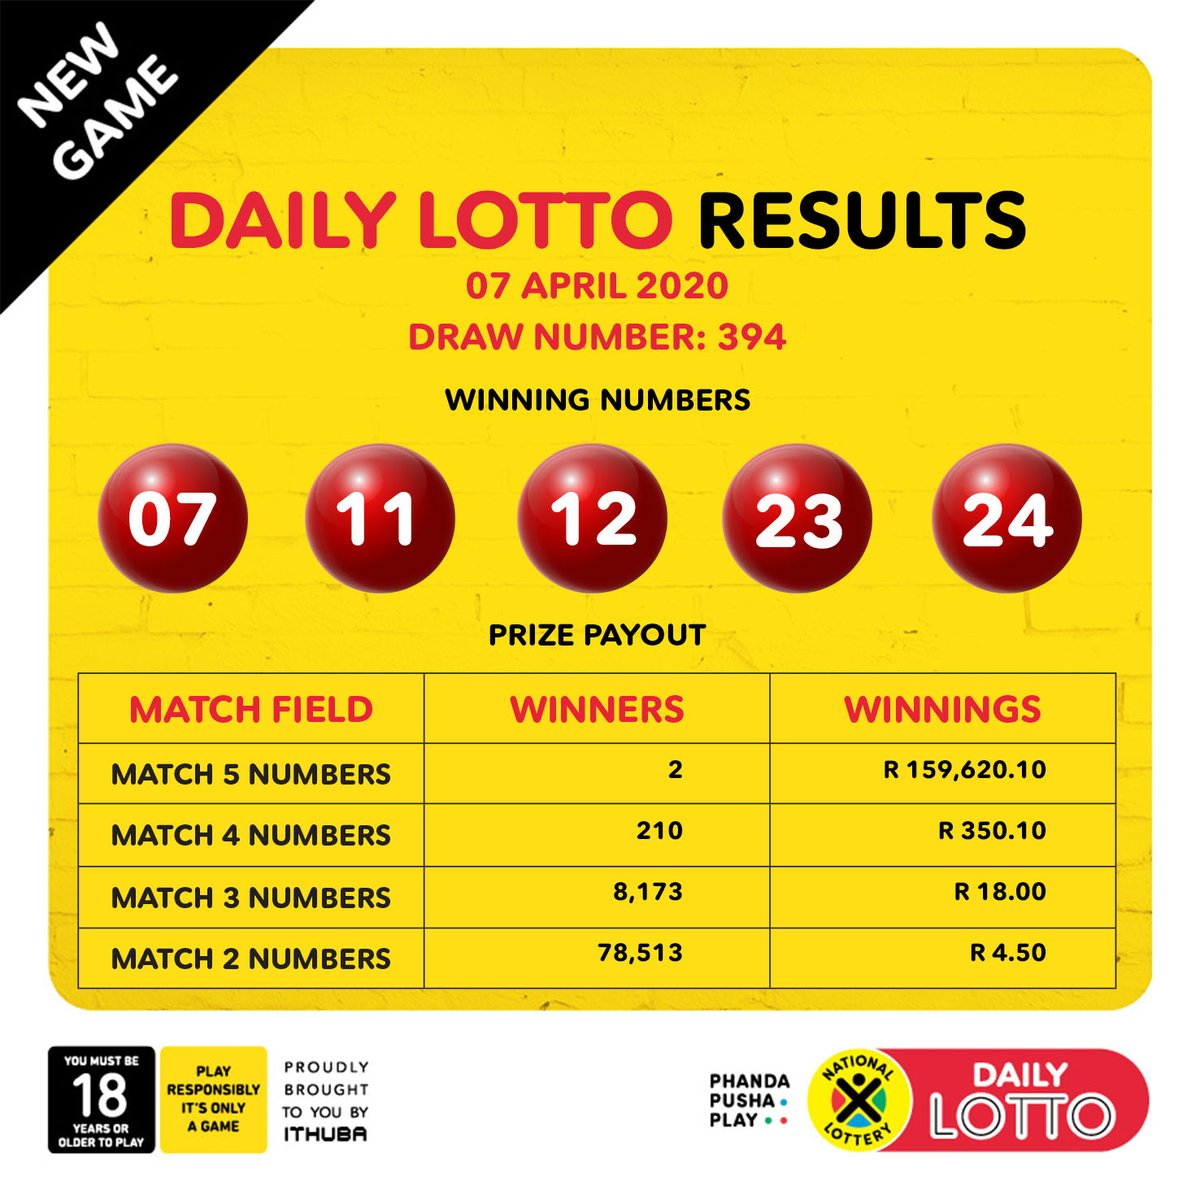 Here are the DrawResults & Payouts for (07/04/2020):   #DAILY LOTTO: 07, 11, 12, 23, 24   Congratulations to all the #winners!pic.twitter.com/SxS0Wo20Qj